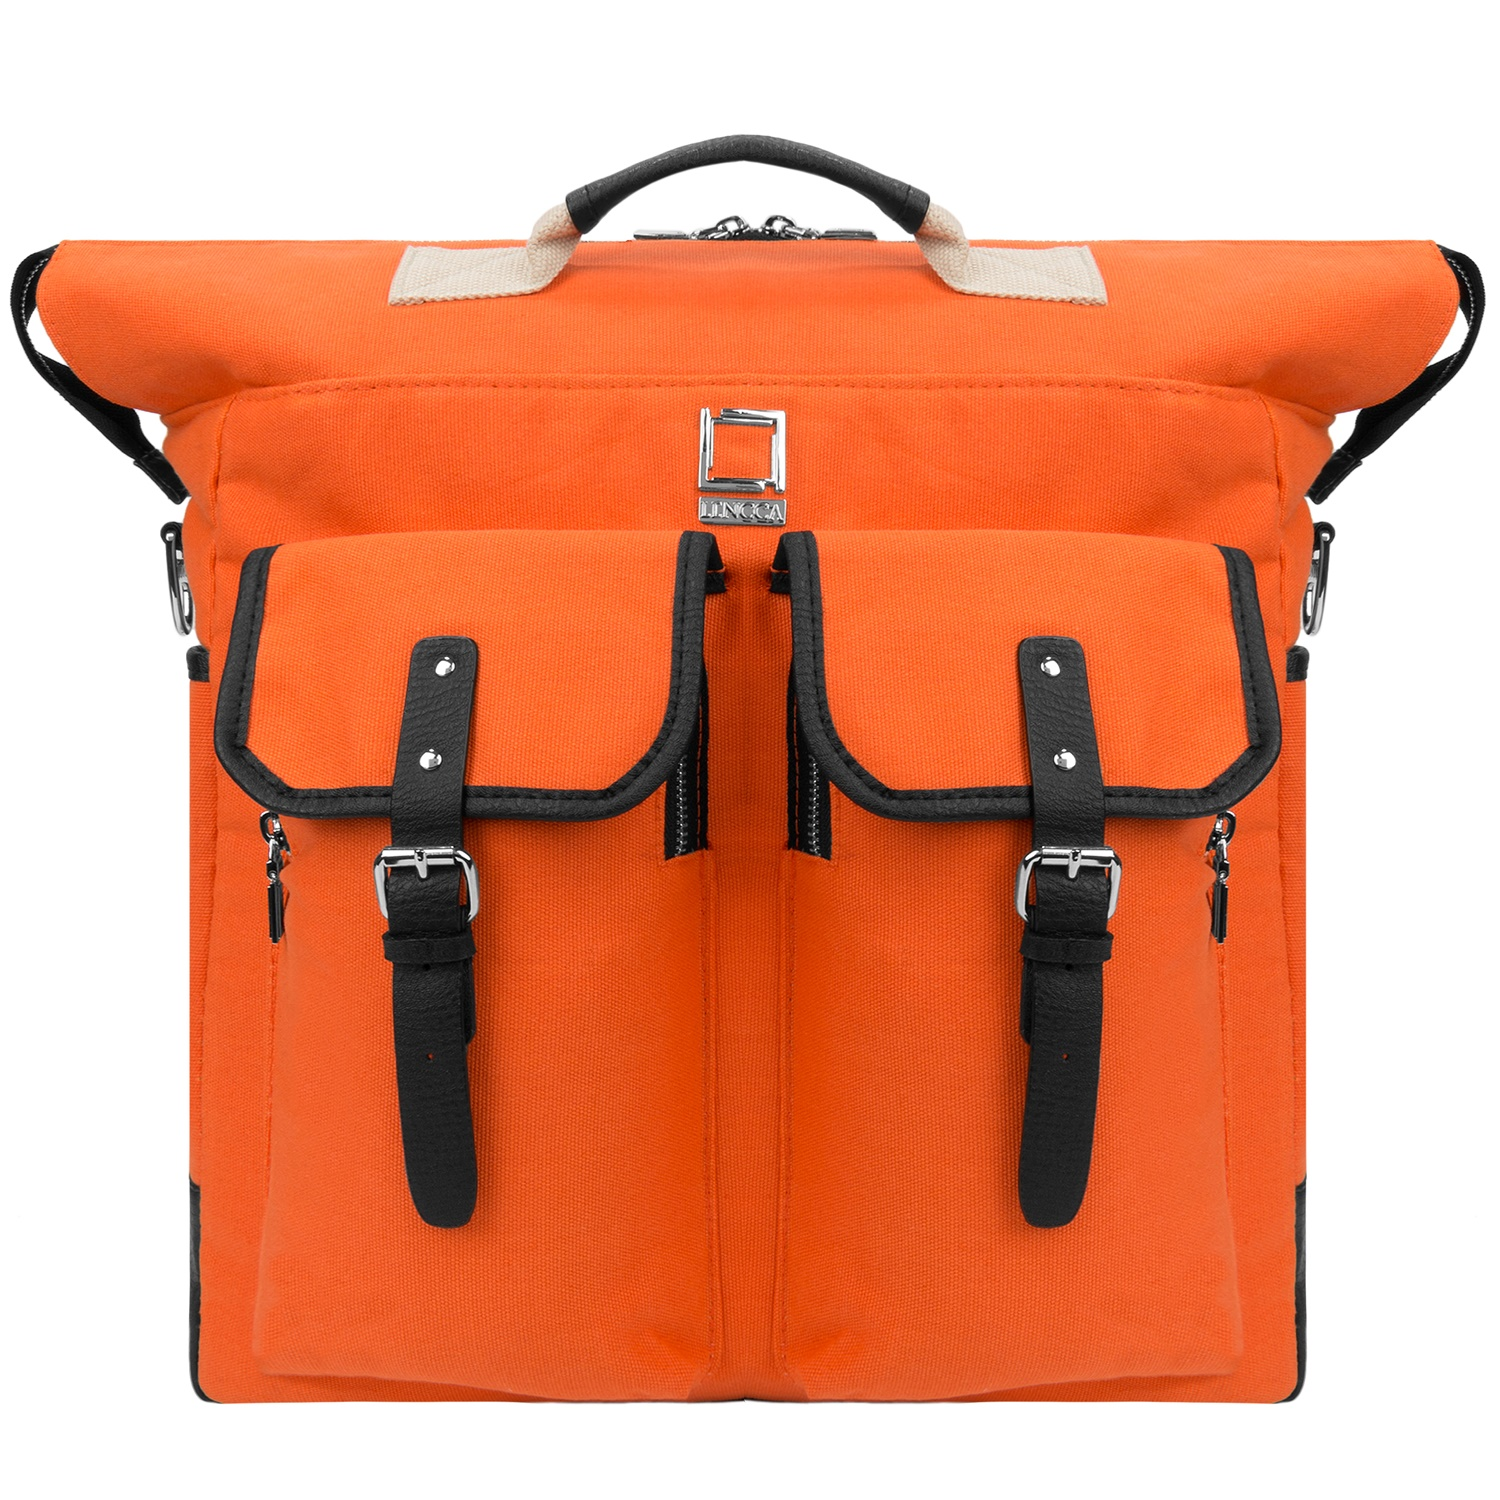 """LENCCA Phlox 3 in 1 Universal Messenger / Backpack / Carrying Bag Fits up to 13"""", 13.3"""", 15""""or 15.6"""" Laptops / Ultrabooks"""